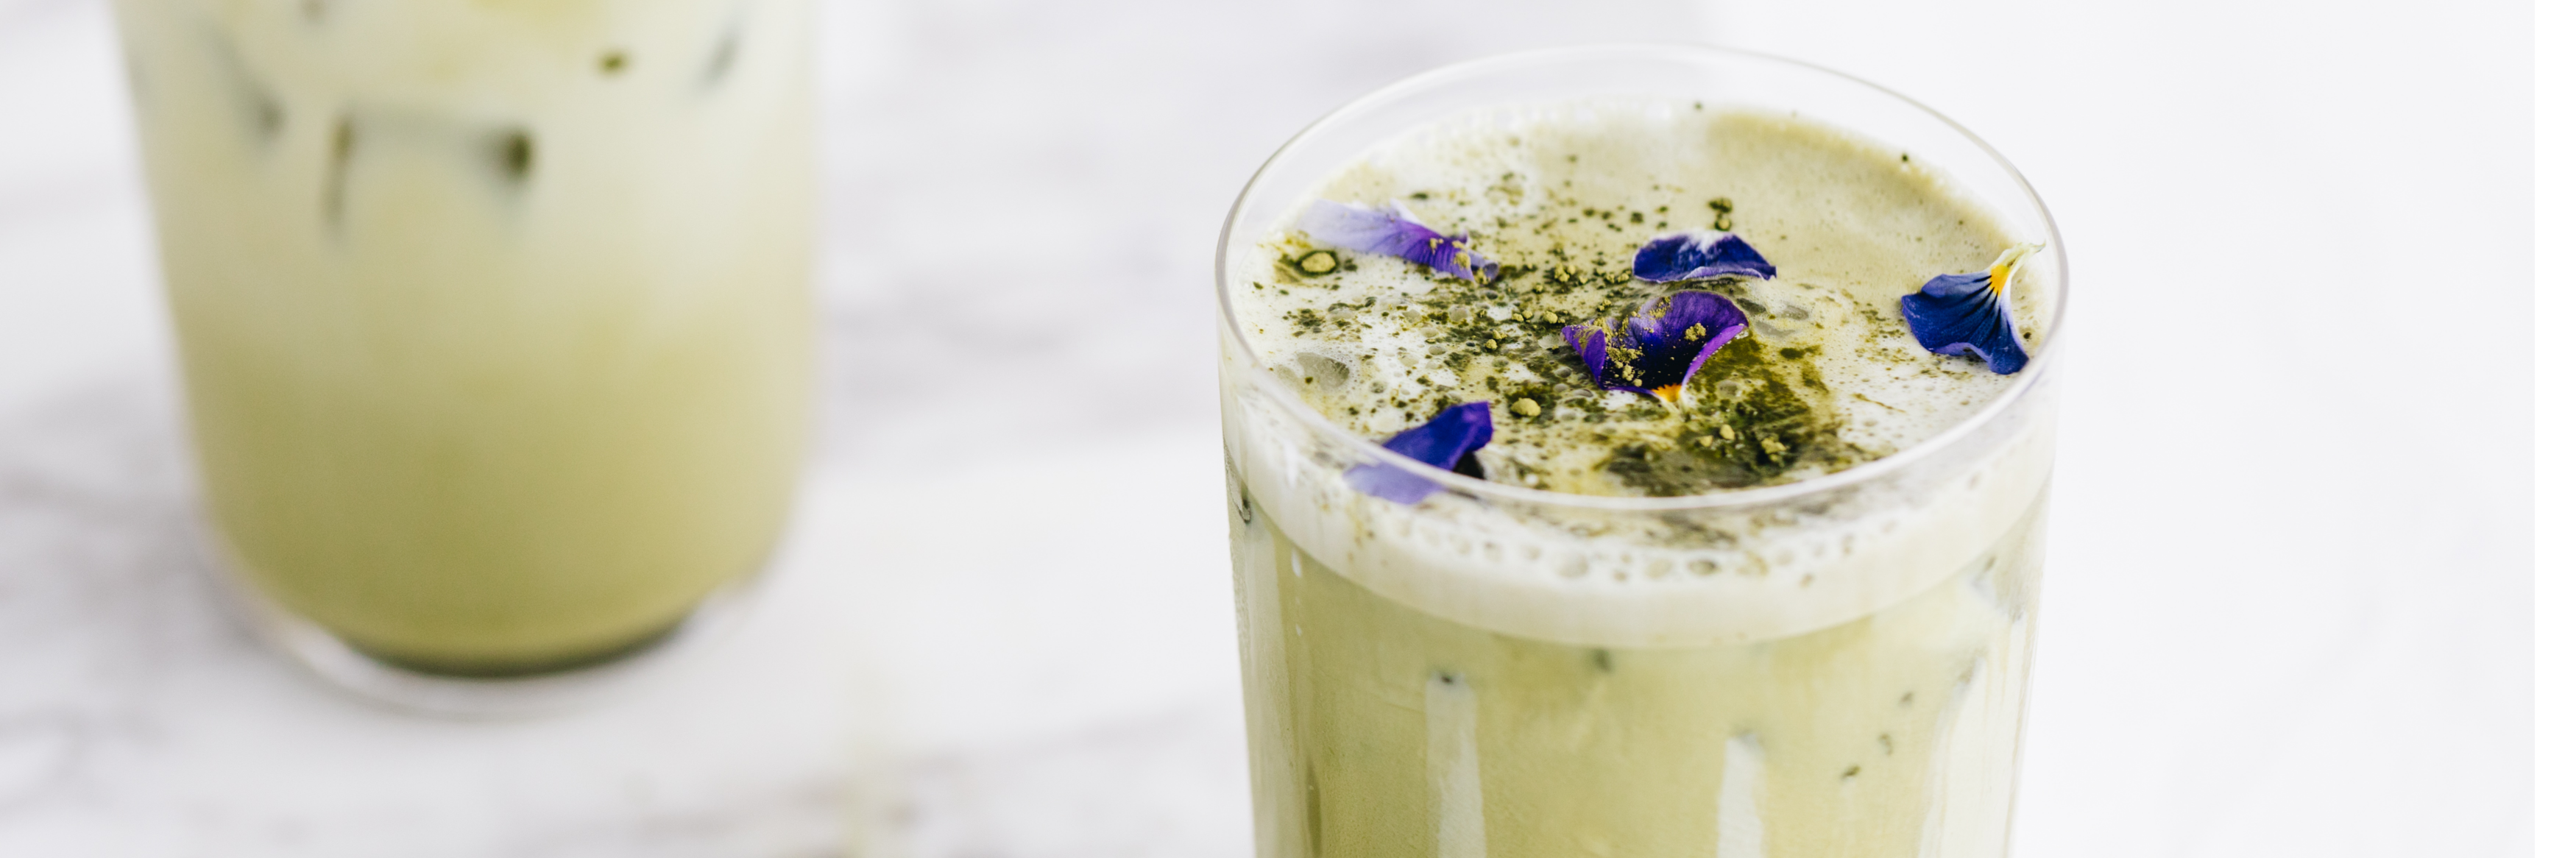 iced matcha latte in glass